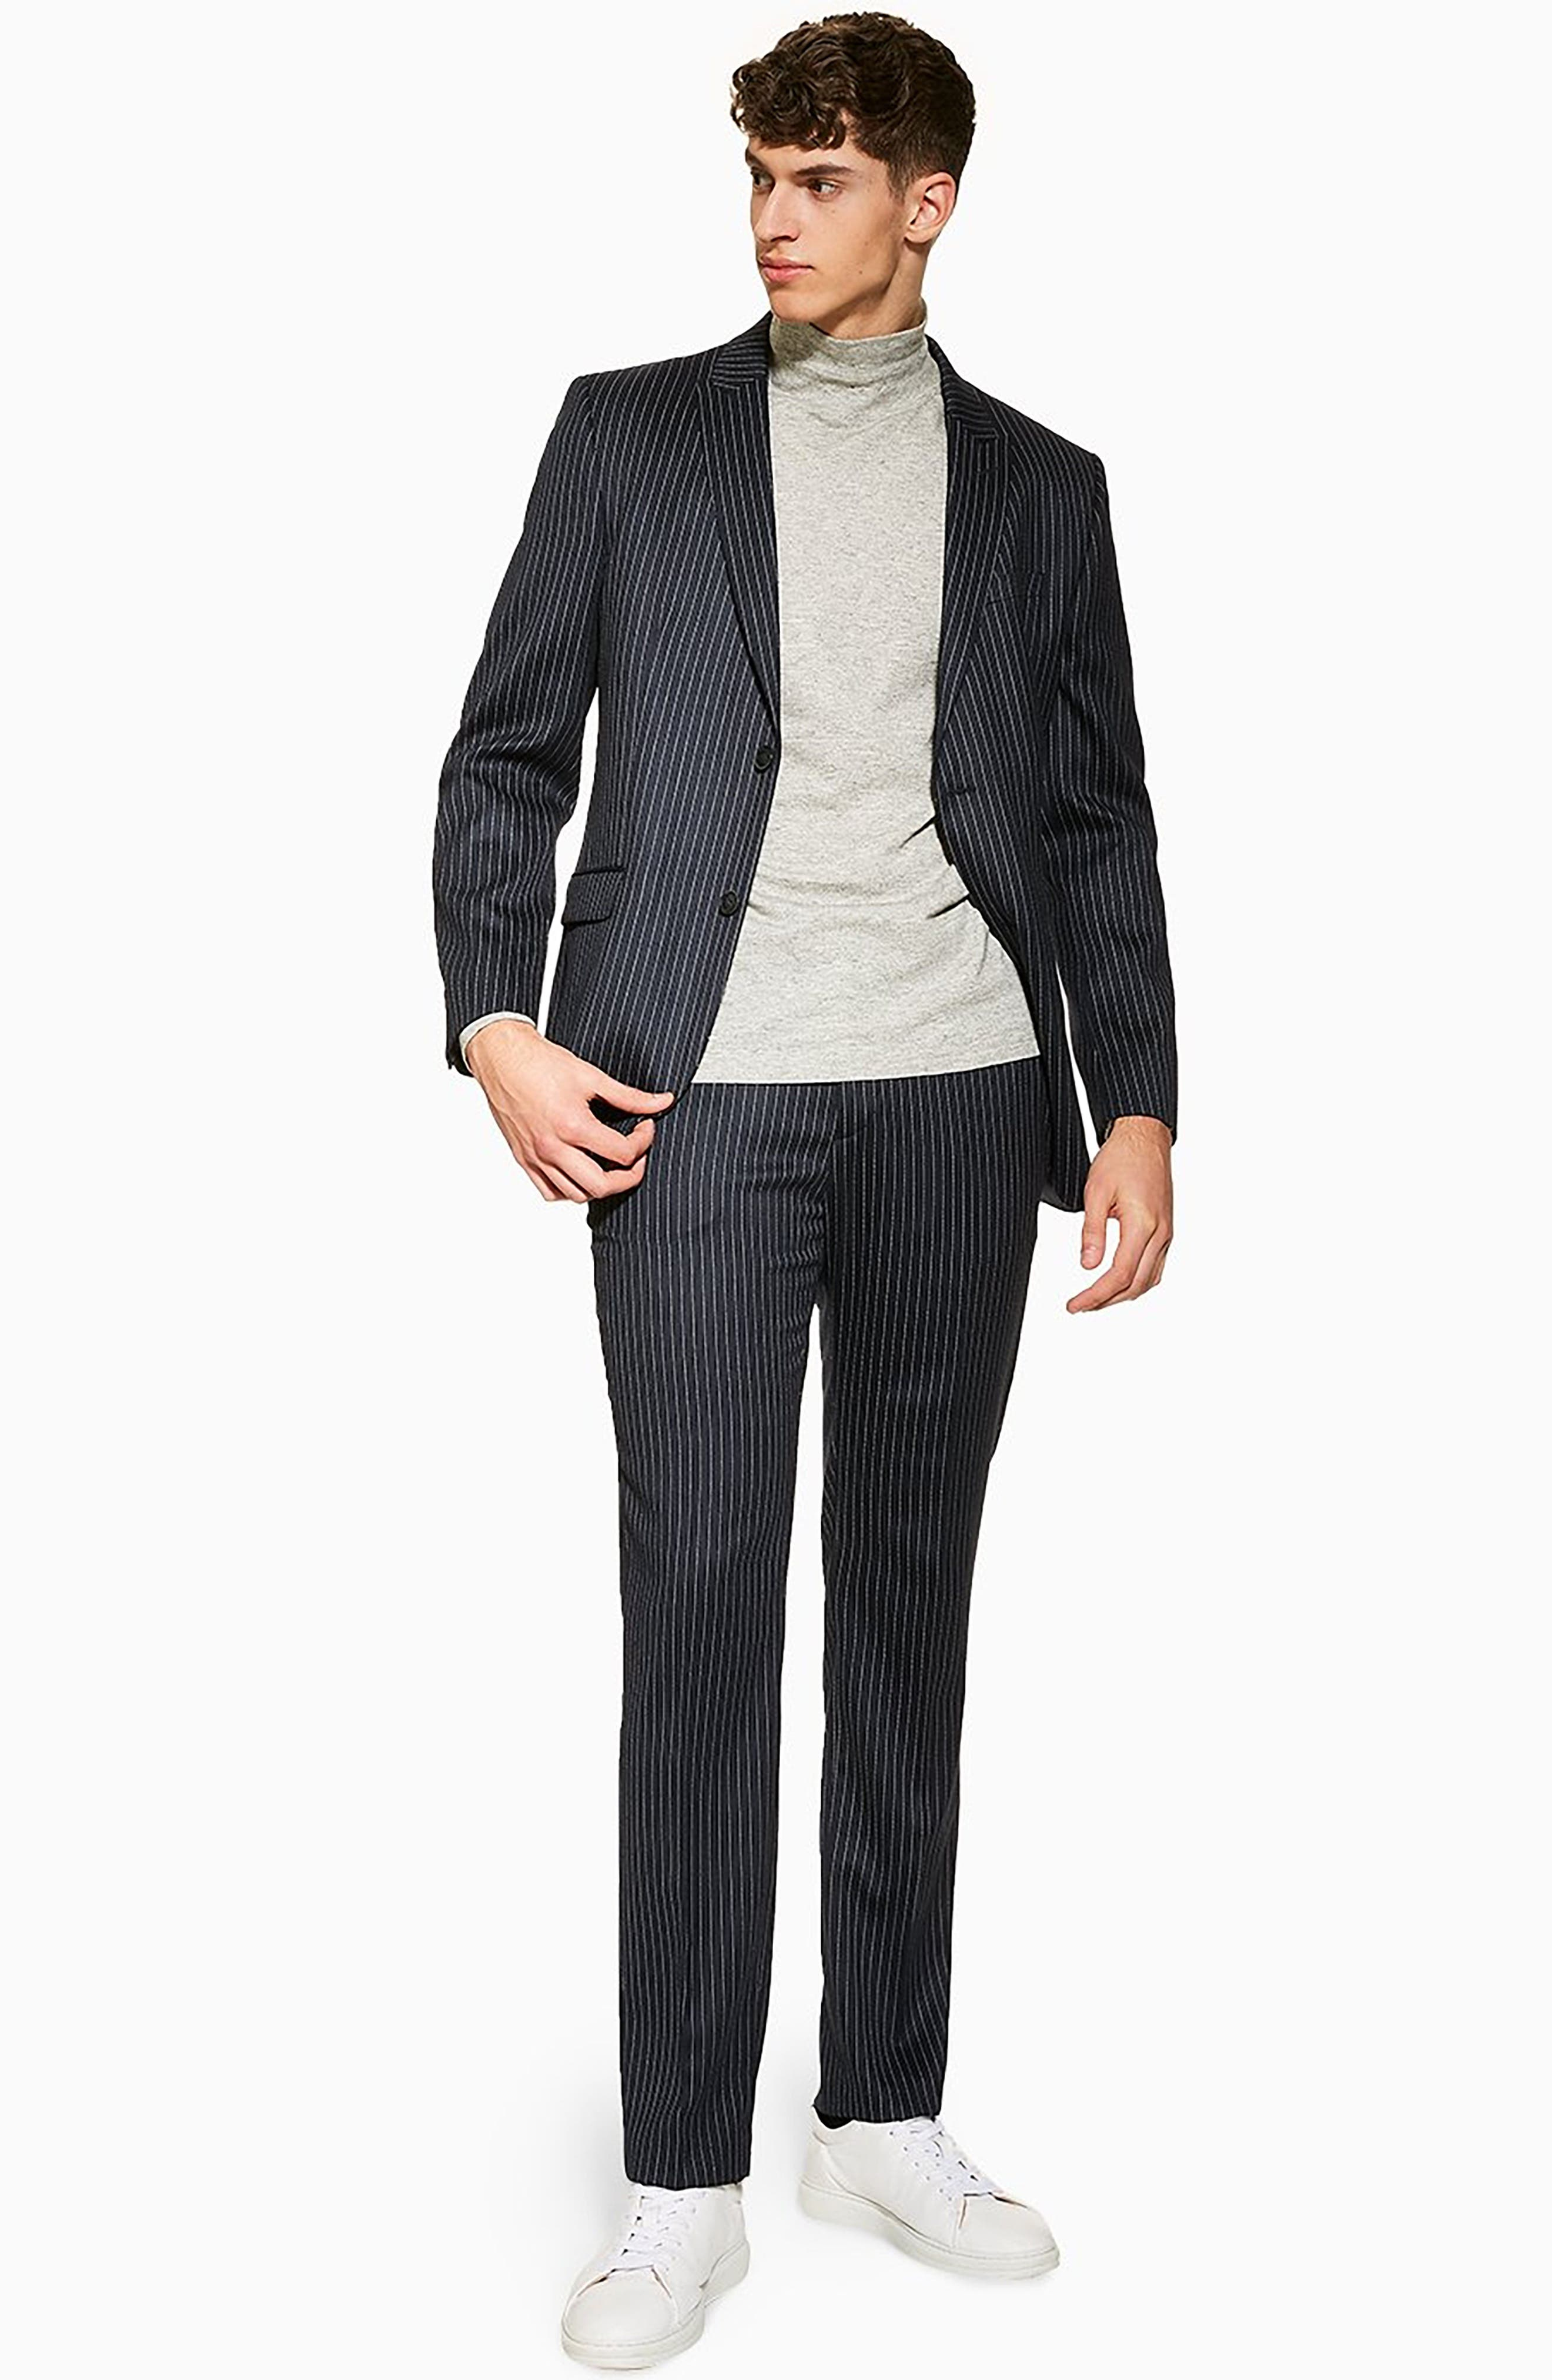 TOPMAN, Tailored Pinstripe Trousers, Alternate thumbnail 4, color, NAVY BLUE